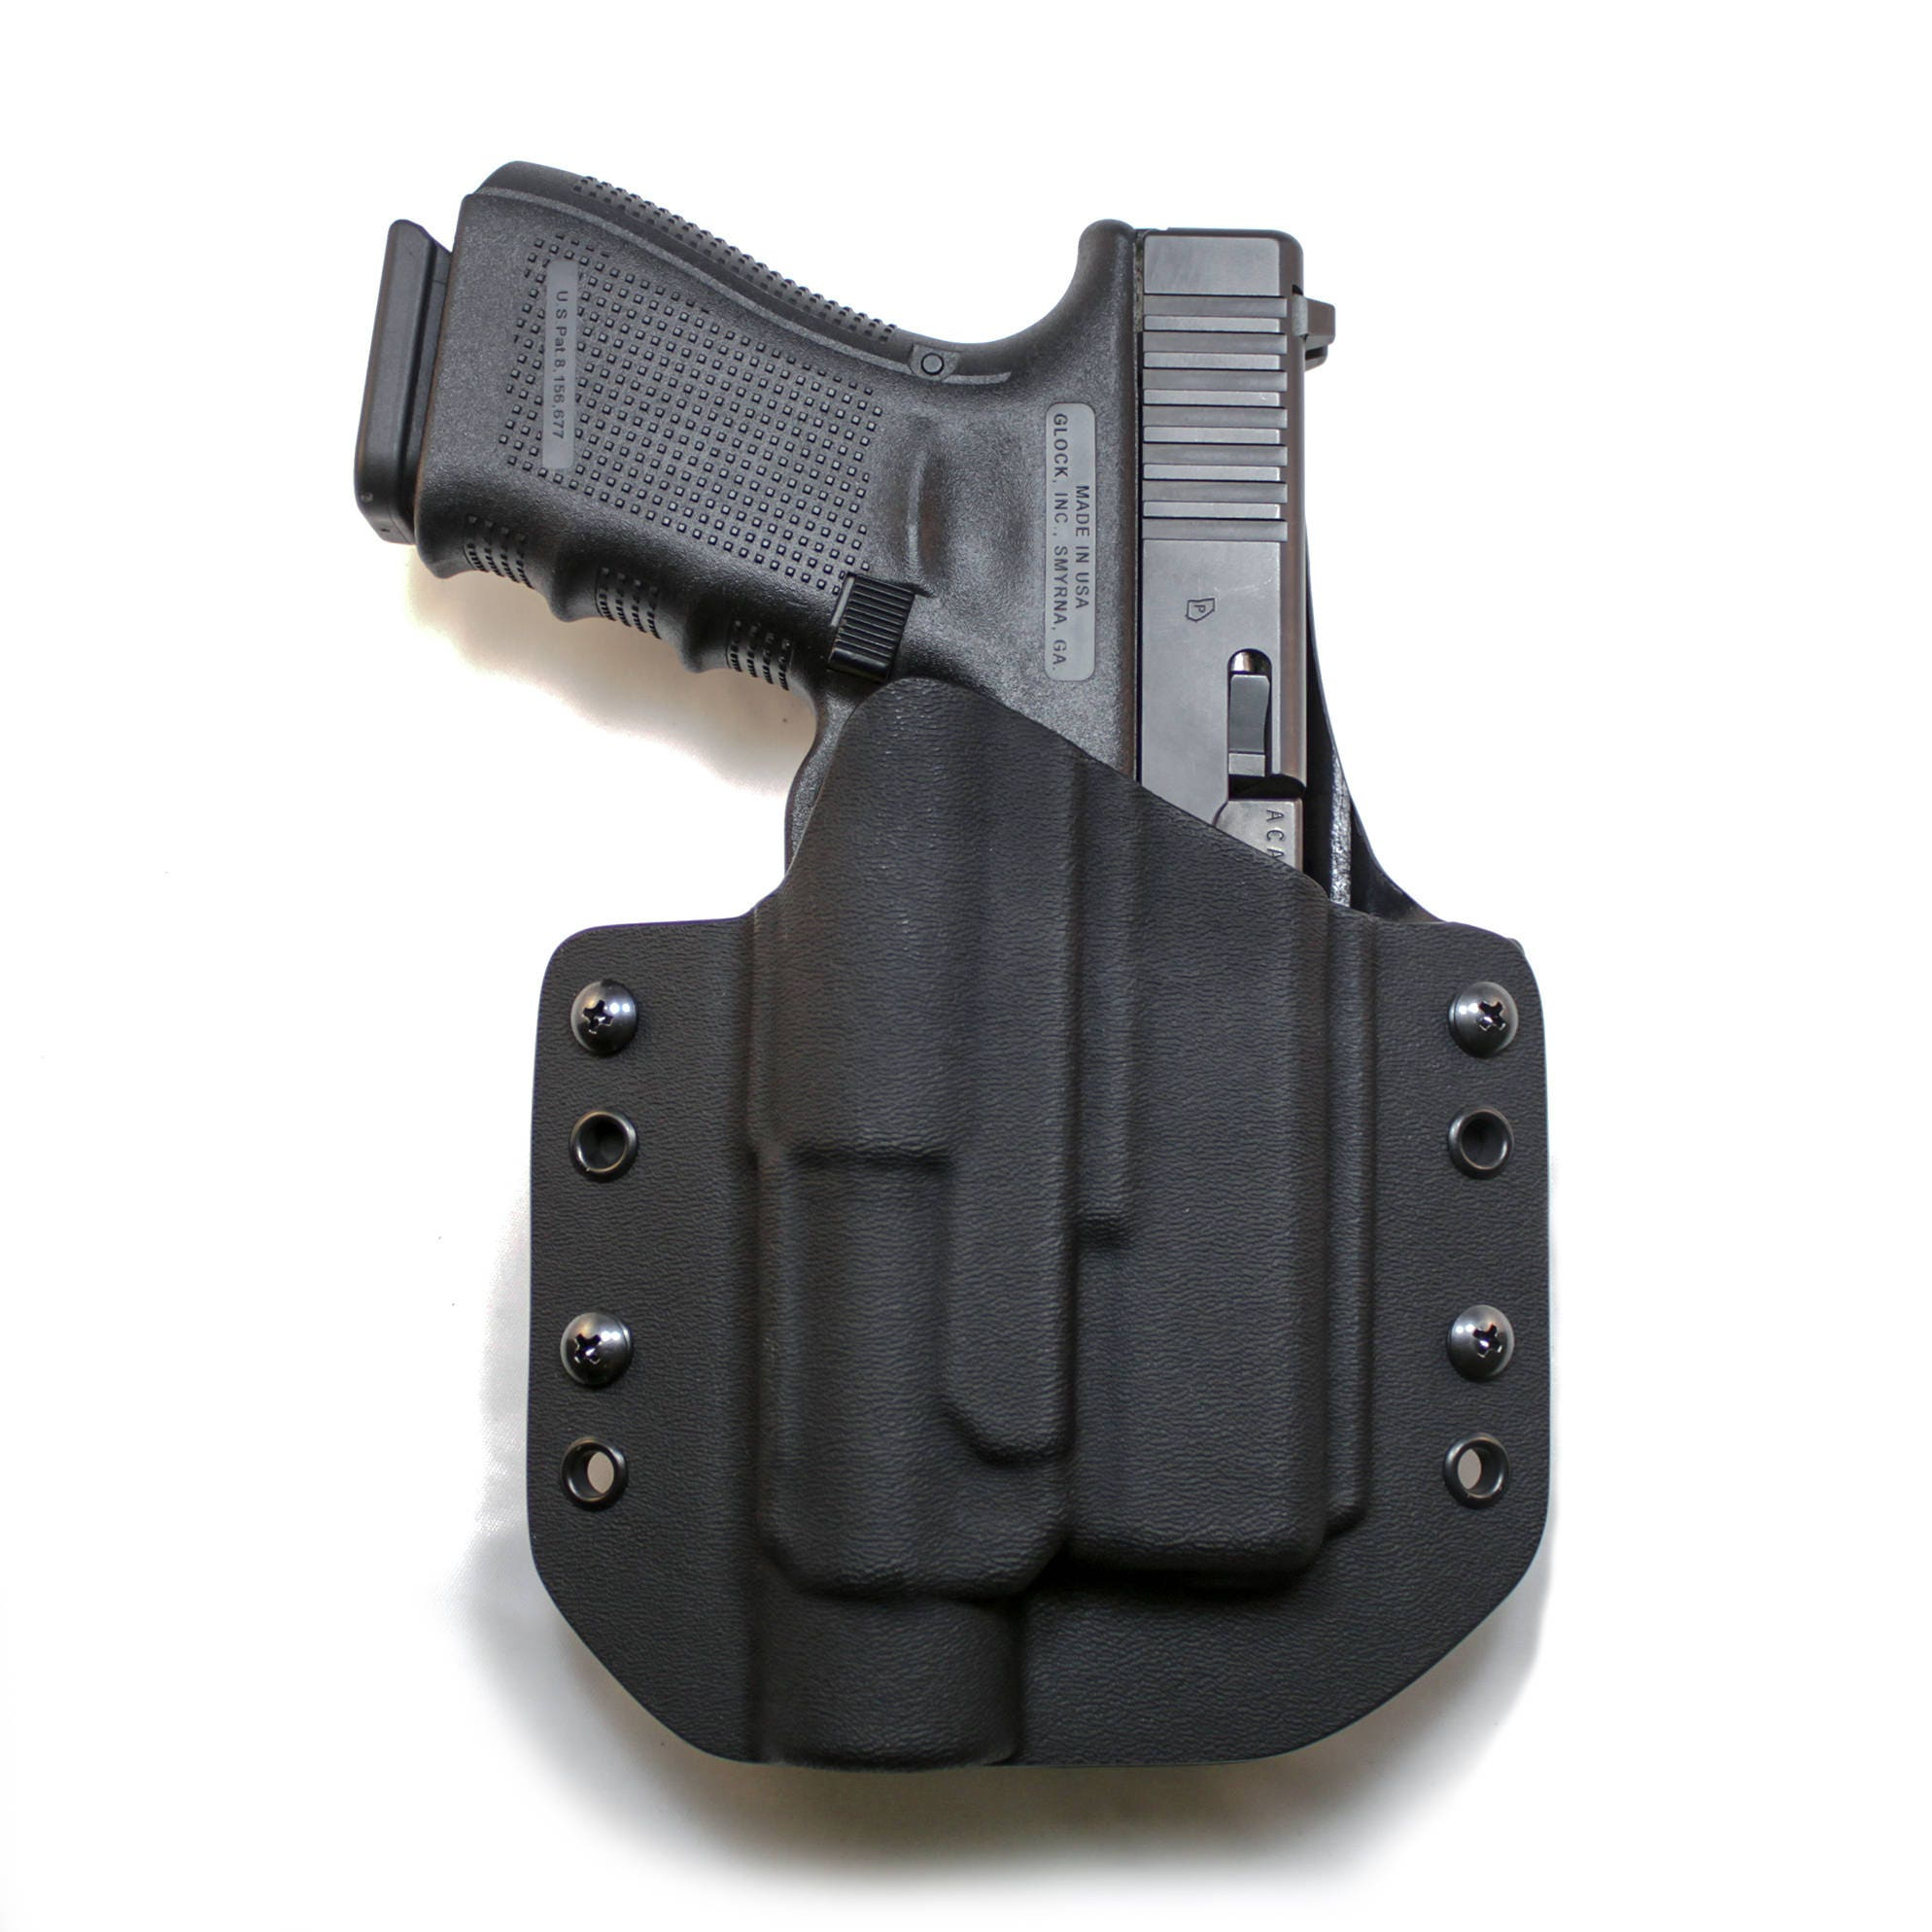 GMI Holsters - Light Bearing OWB Holster Glock 19/23 with Streamlight TLR-1